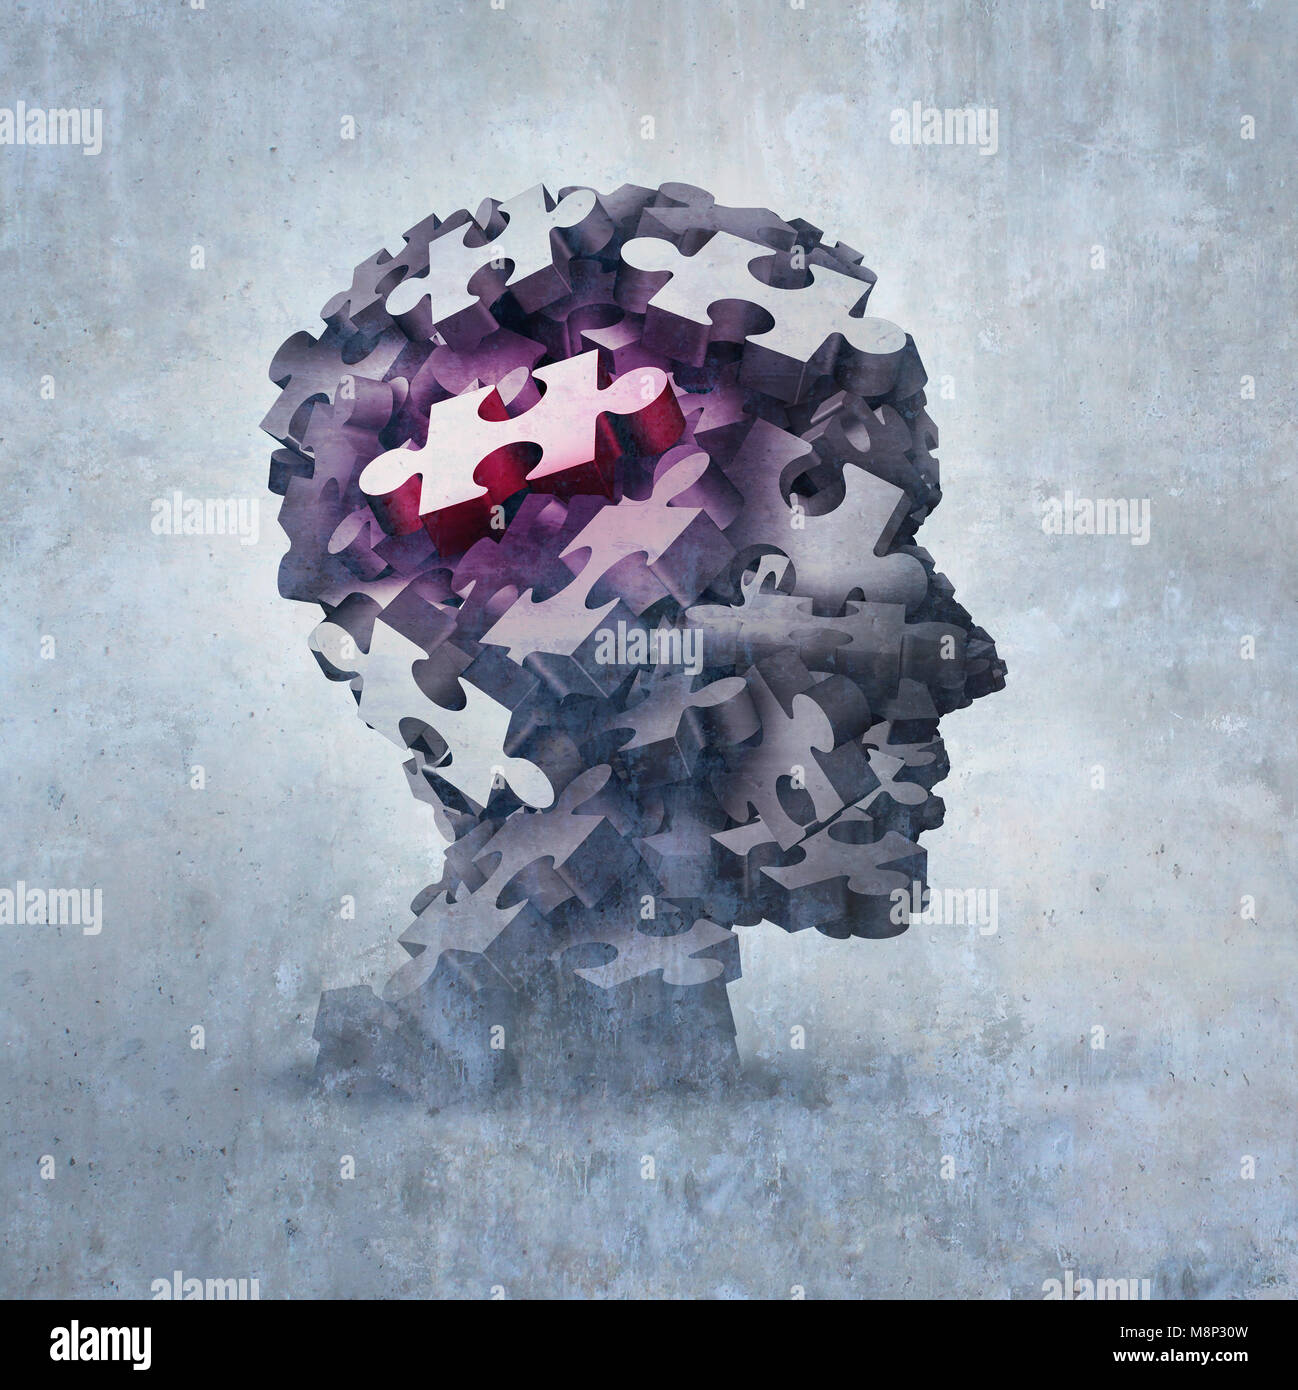 Neurosis mental disorder concept as an obsessive behavior psychiatric and psychology symbol as a 3D illustration. - Stock Image